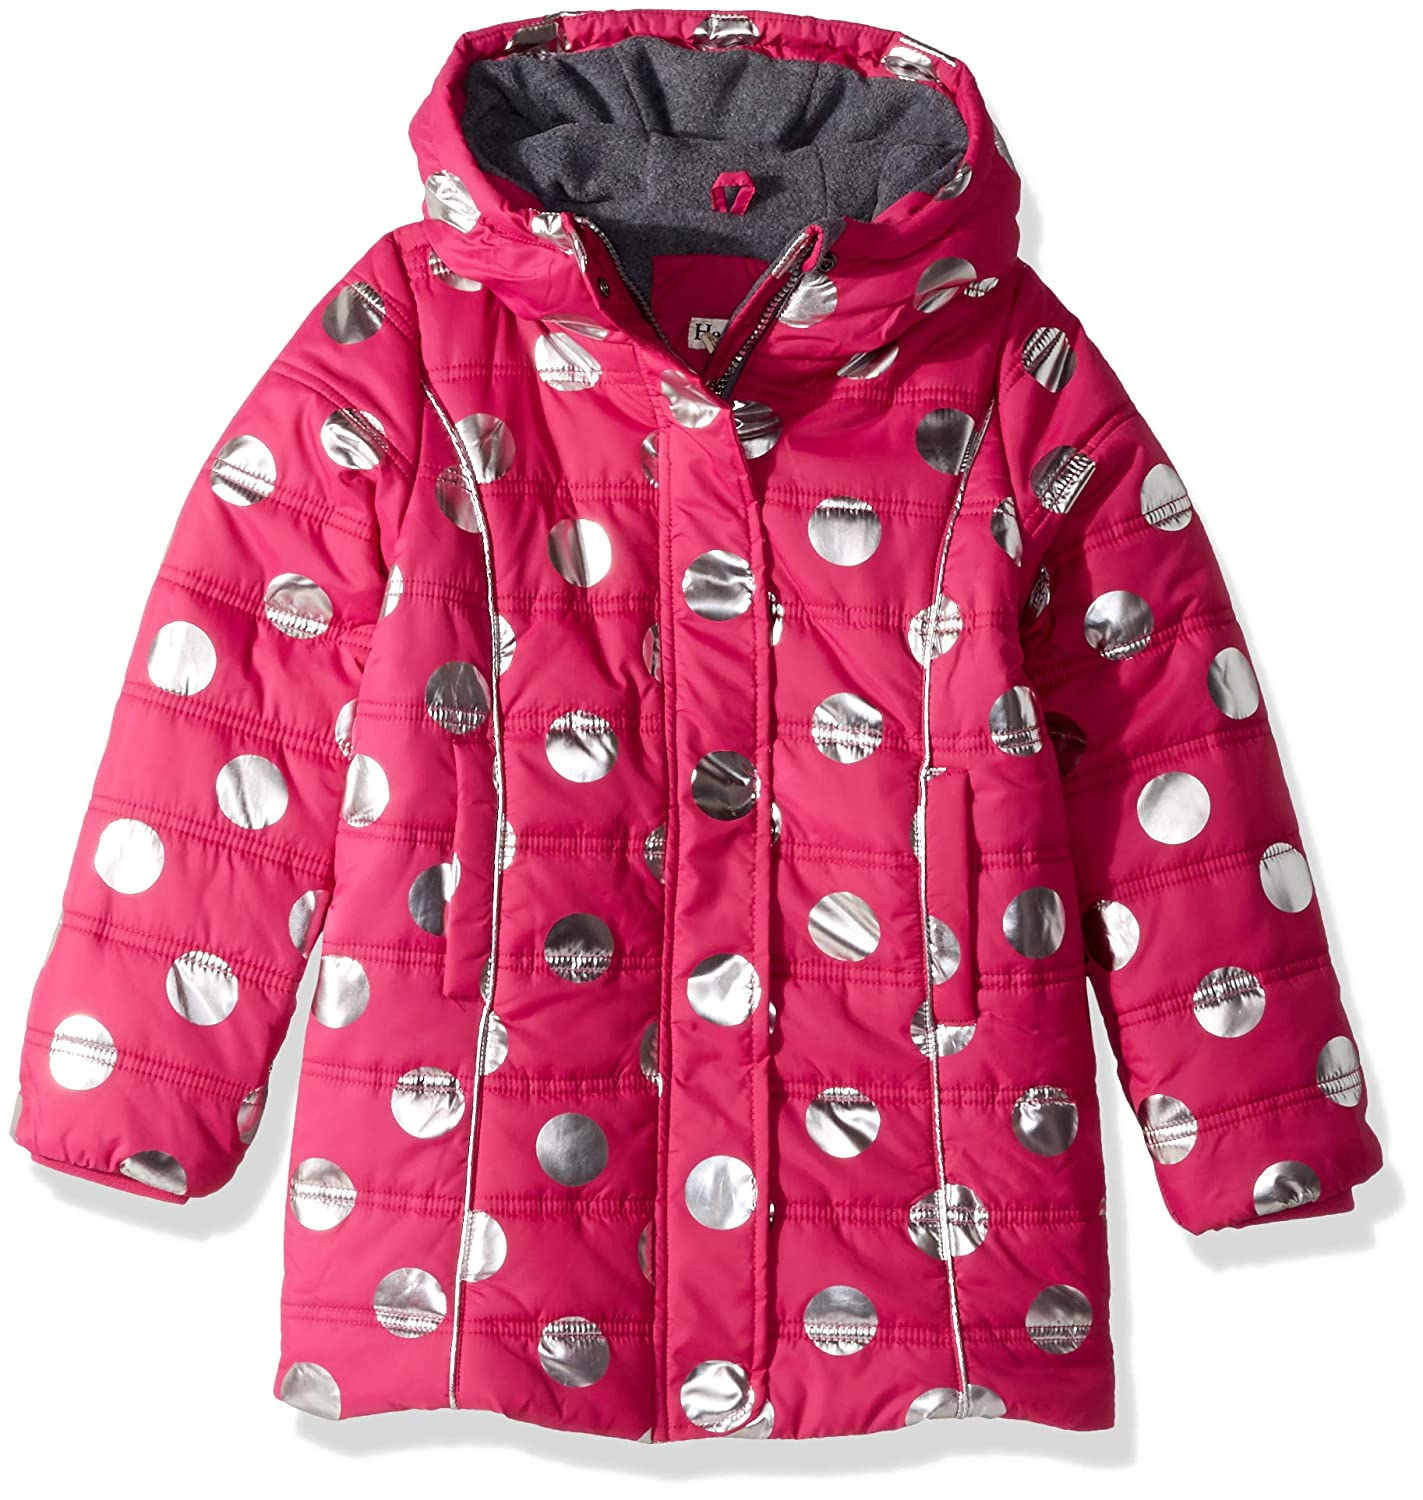 Hatley Girls' Fleece Lined Puffer Coats